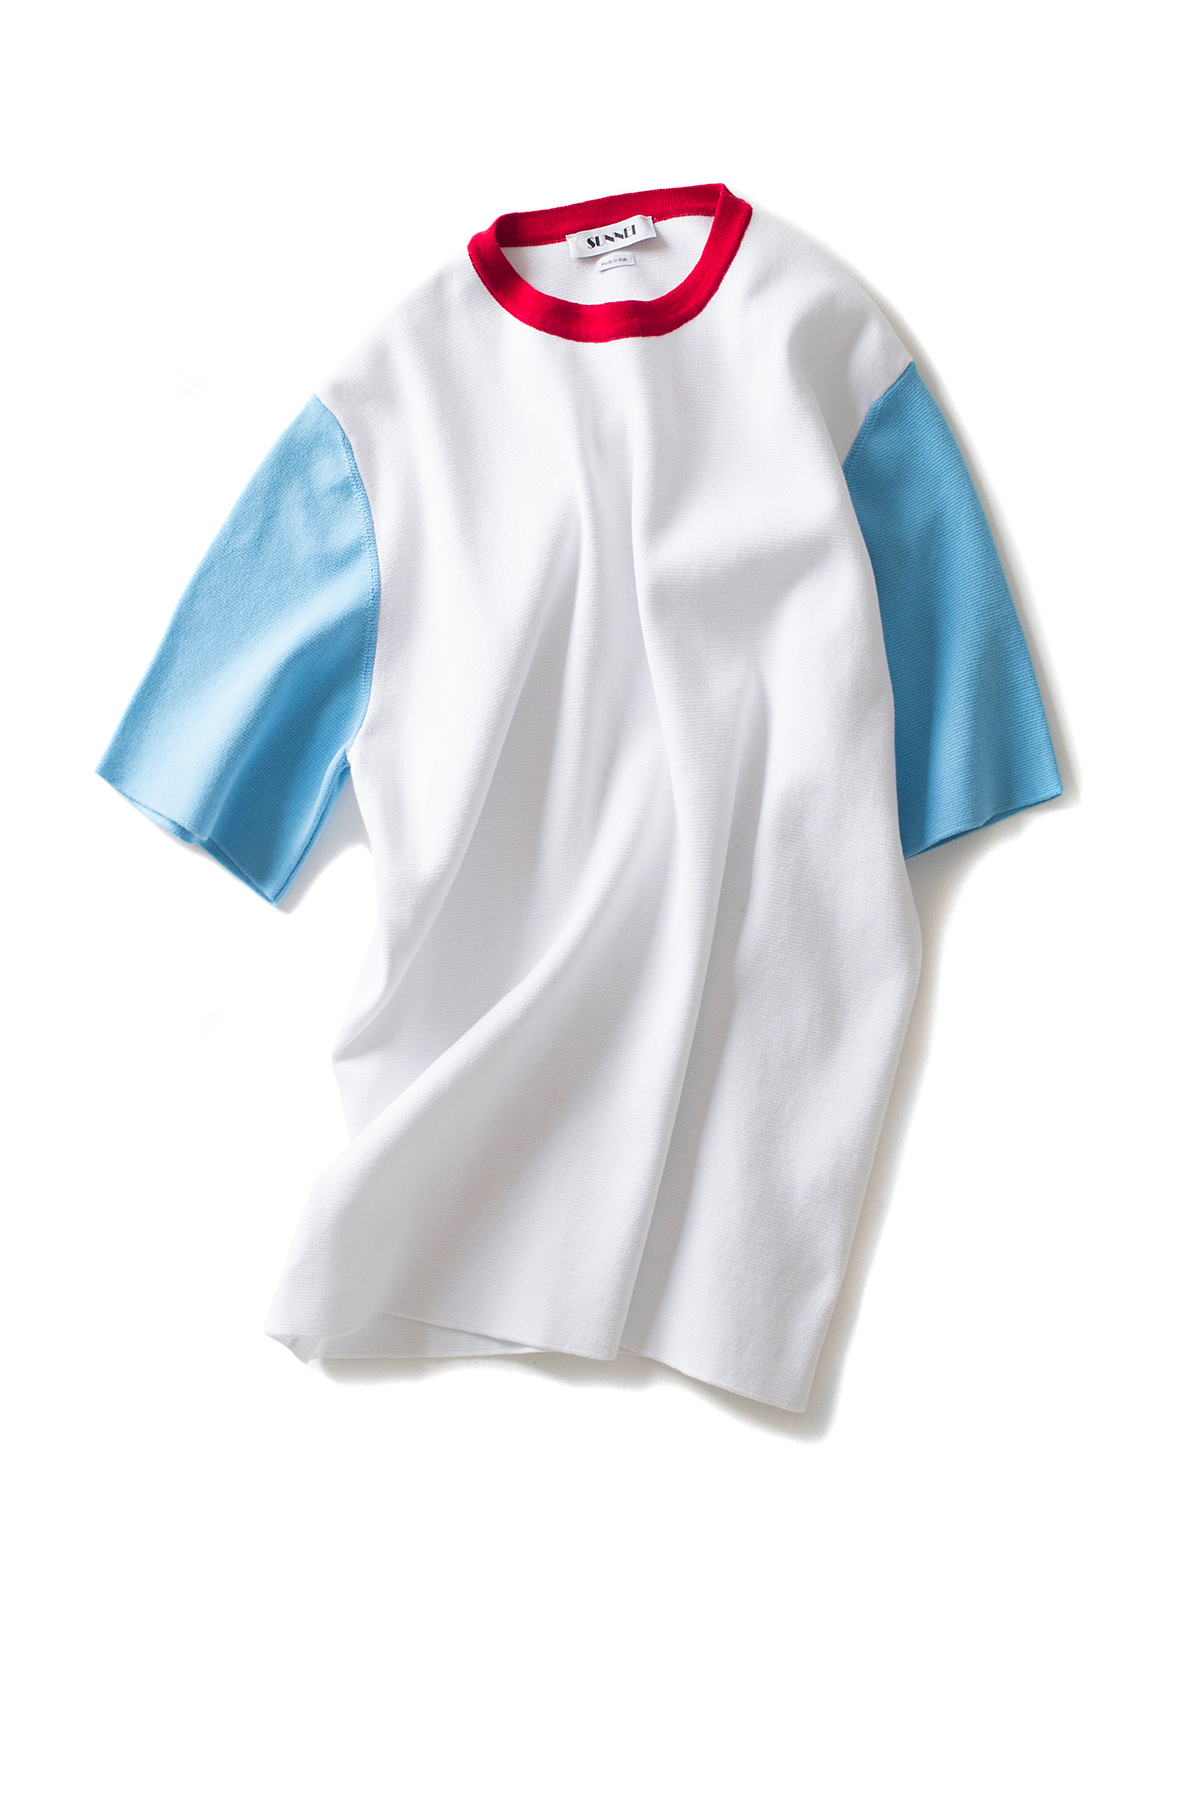 SUNNEI : Knit T-Shirts S/S (White / Azure / Red Wine)